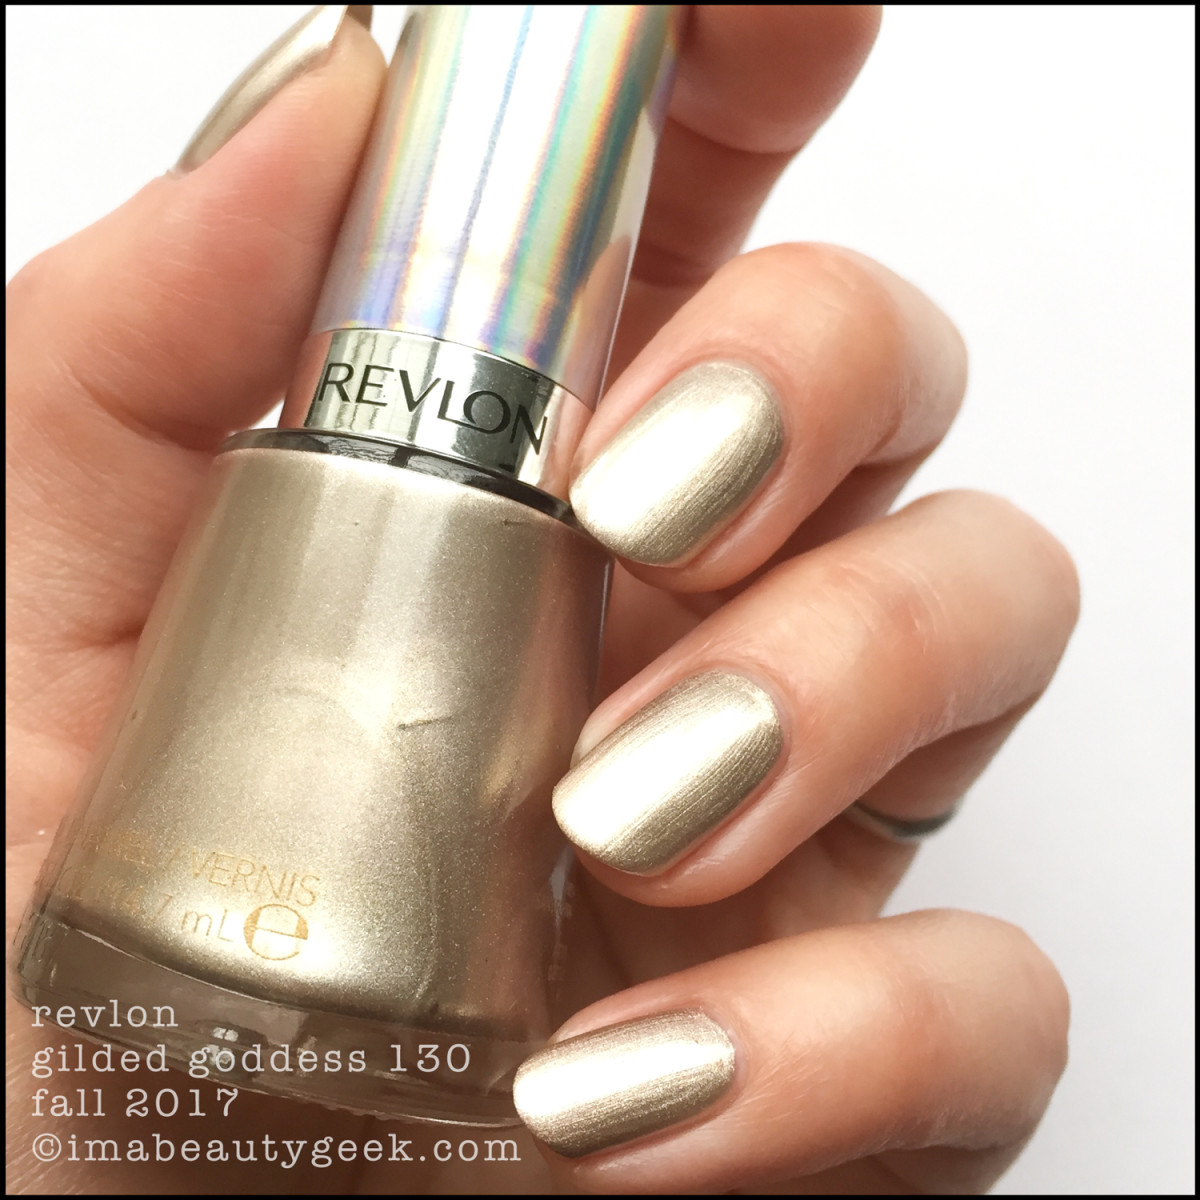 Revlon Gilded Goddess 130 Holochrome Collection Swatches